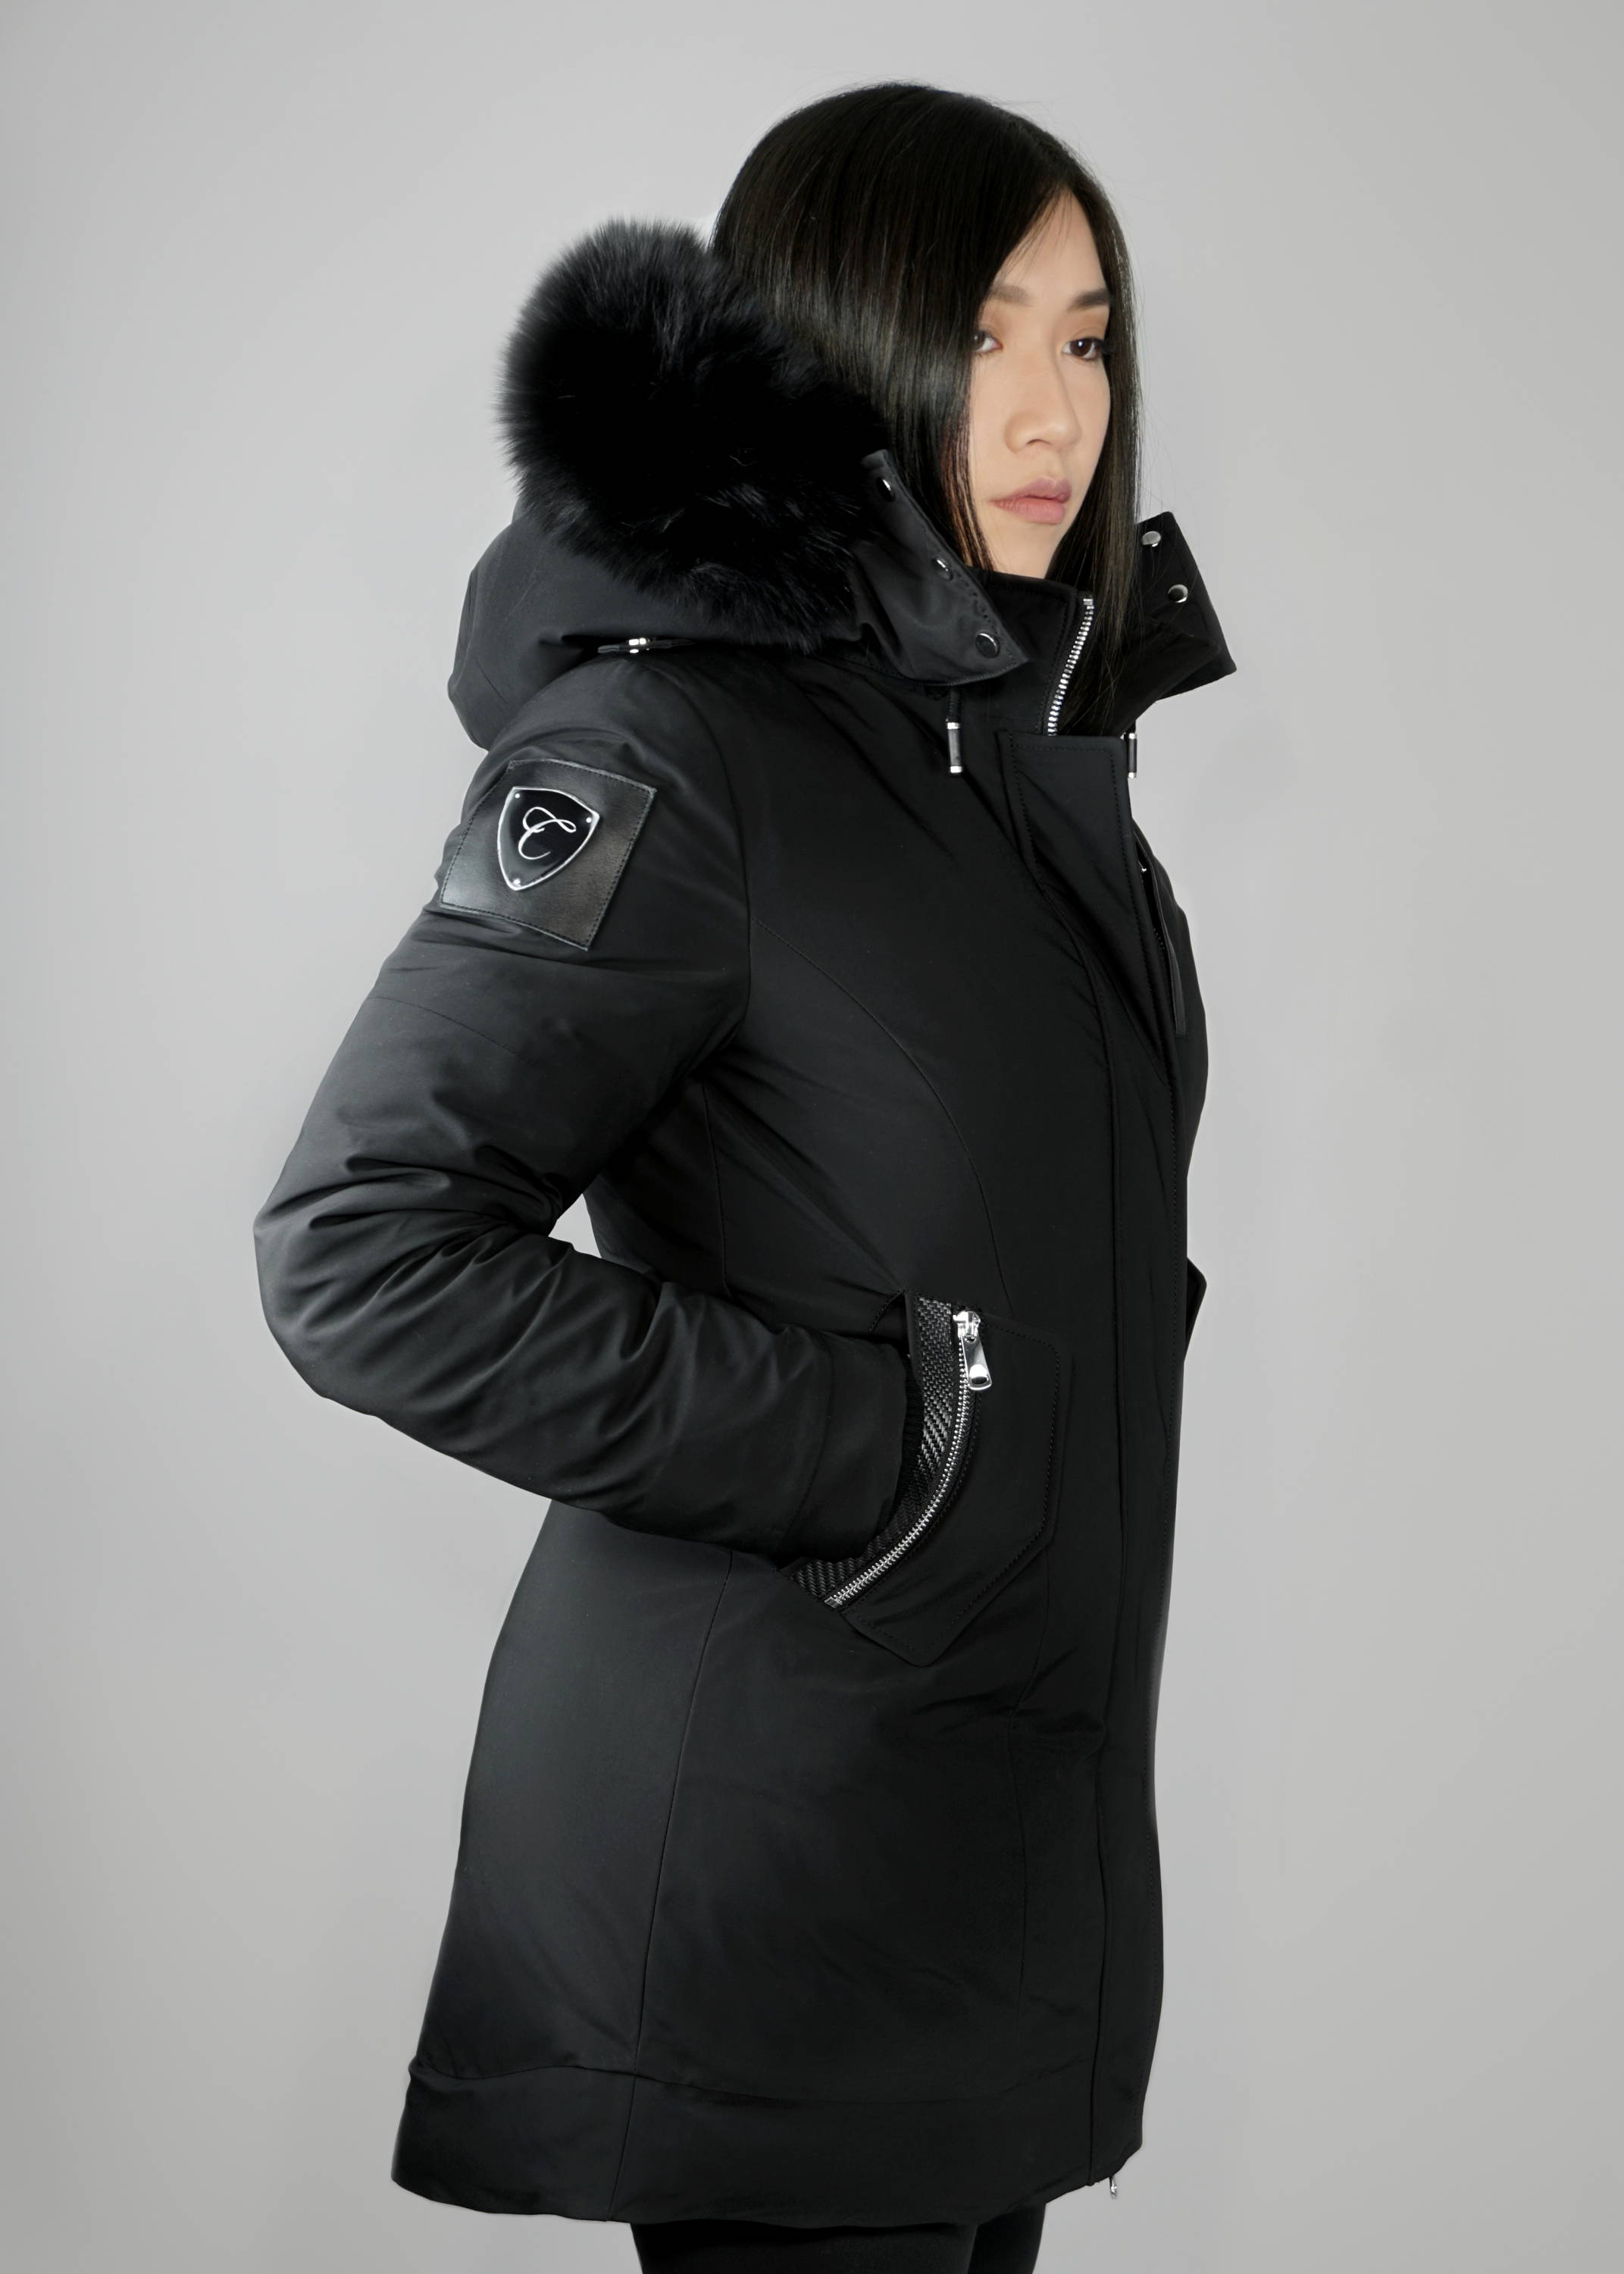 Carbonesque womens signature esmeray parka